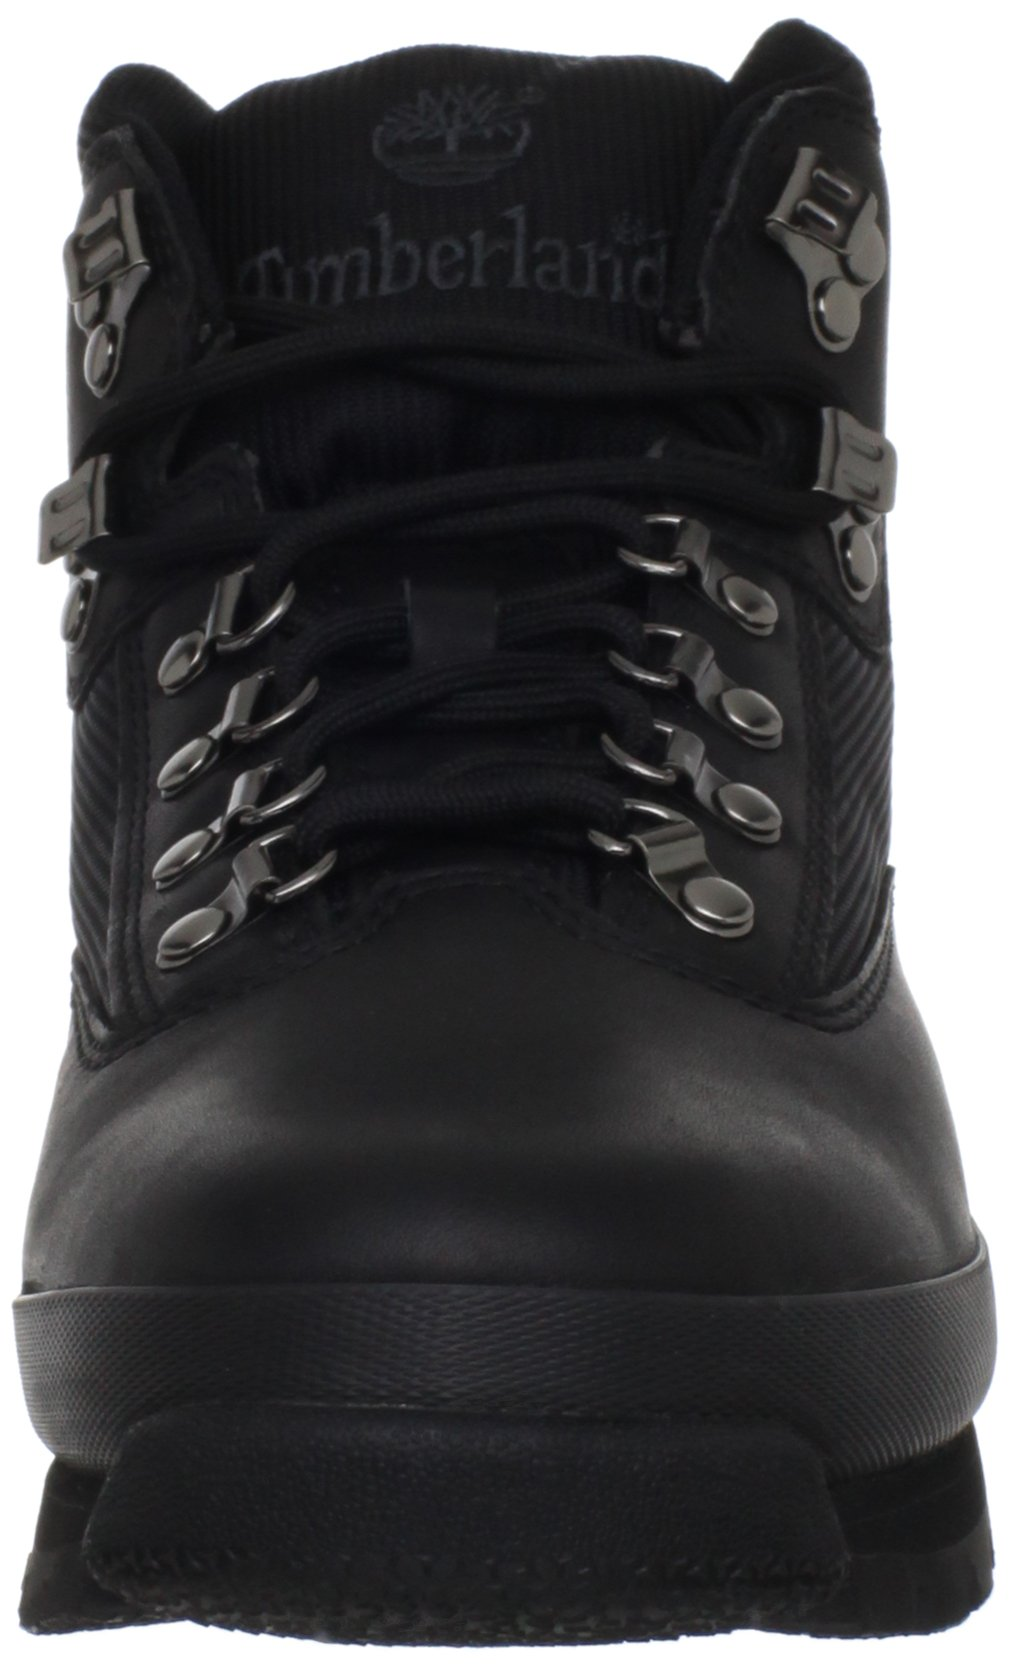 Timberland Men's Euro Boot,Black Smooth,10.5 M US by Timberland (Image #4)